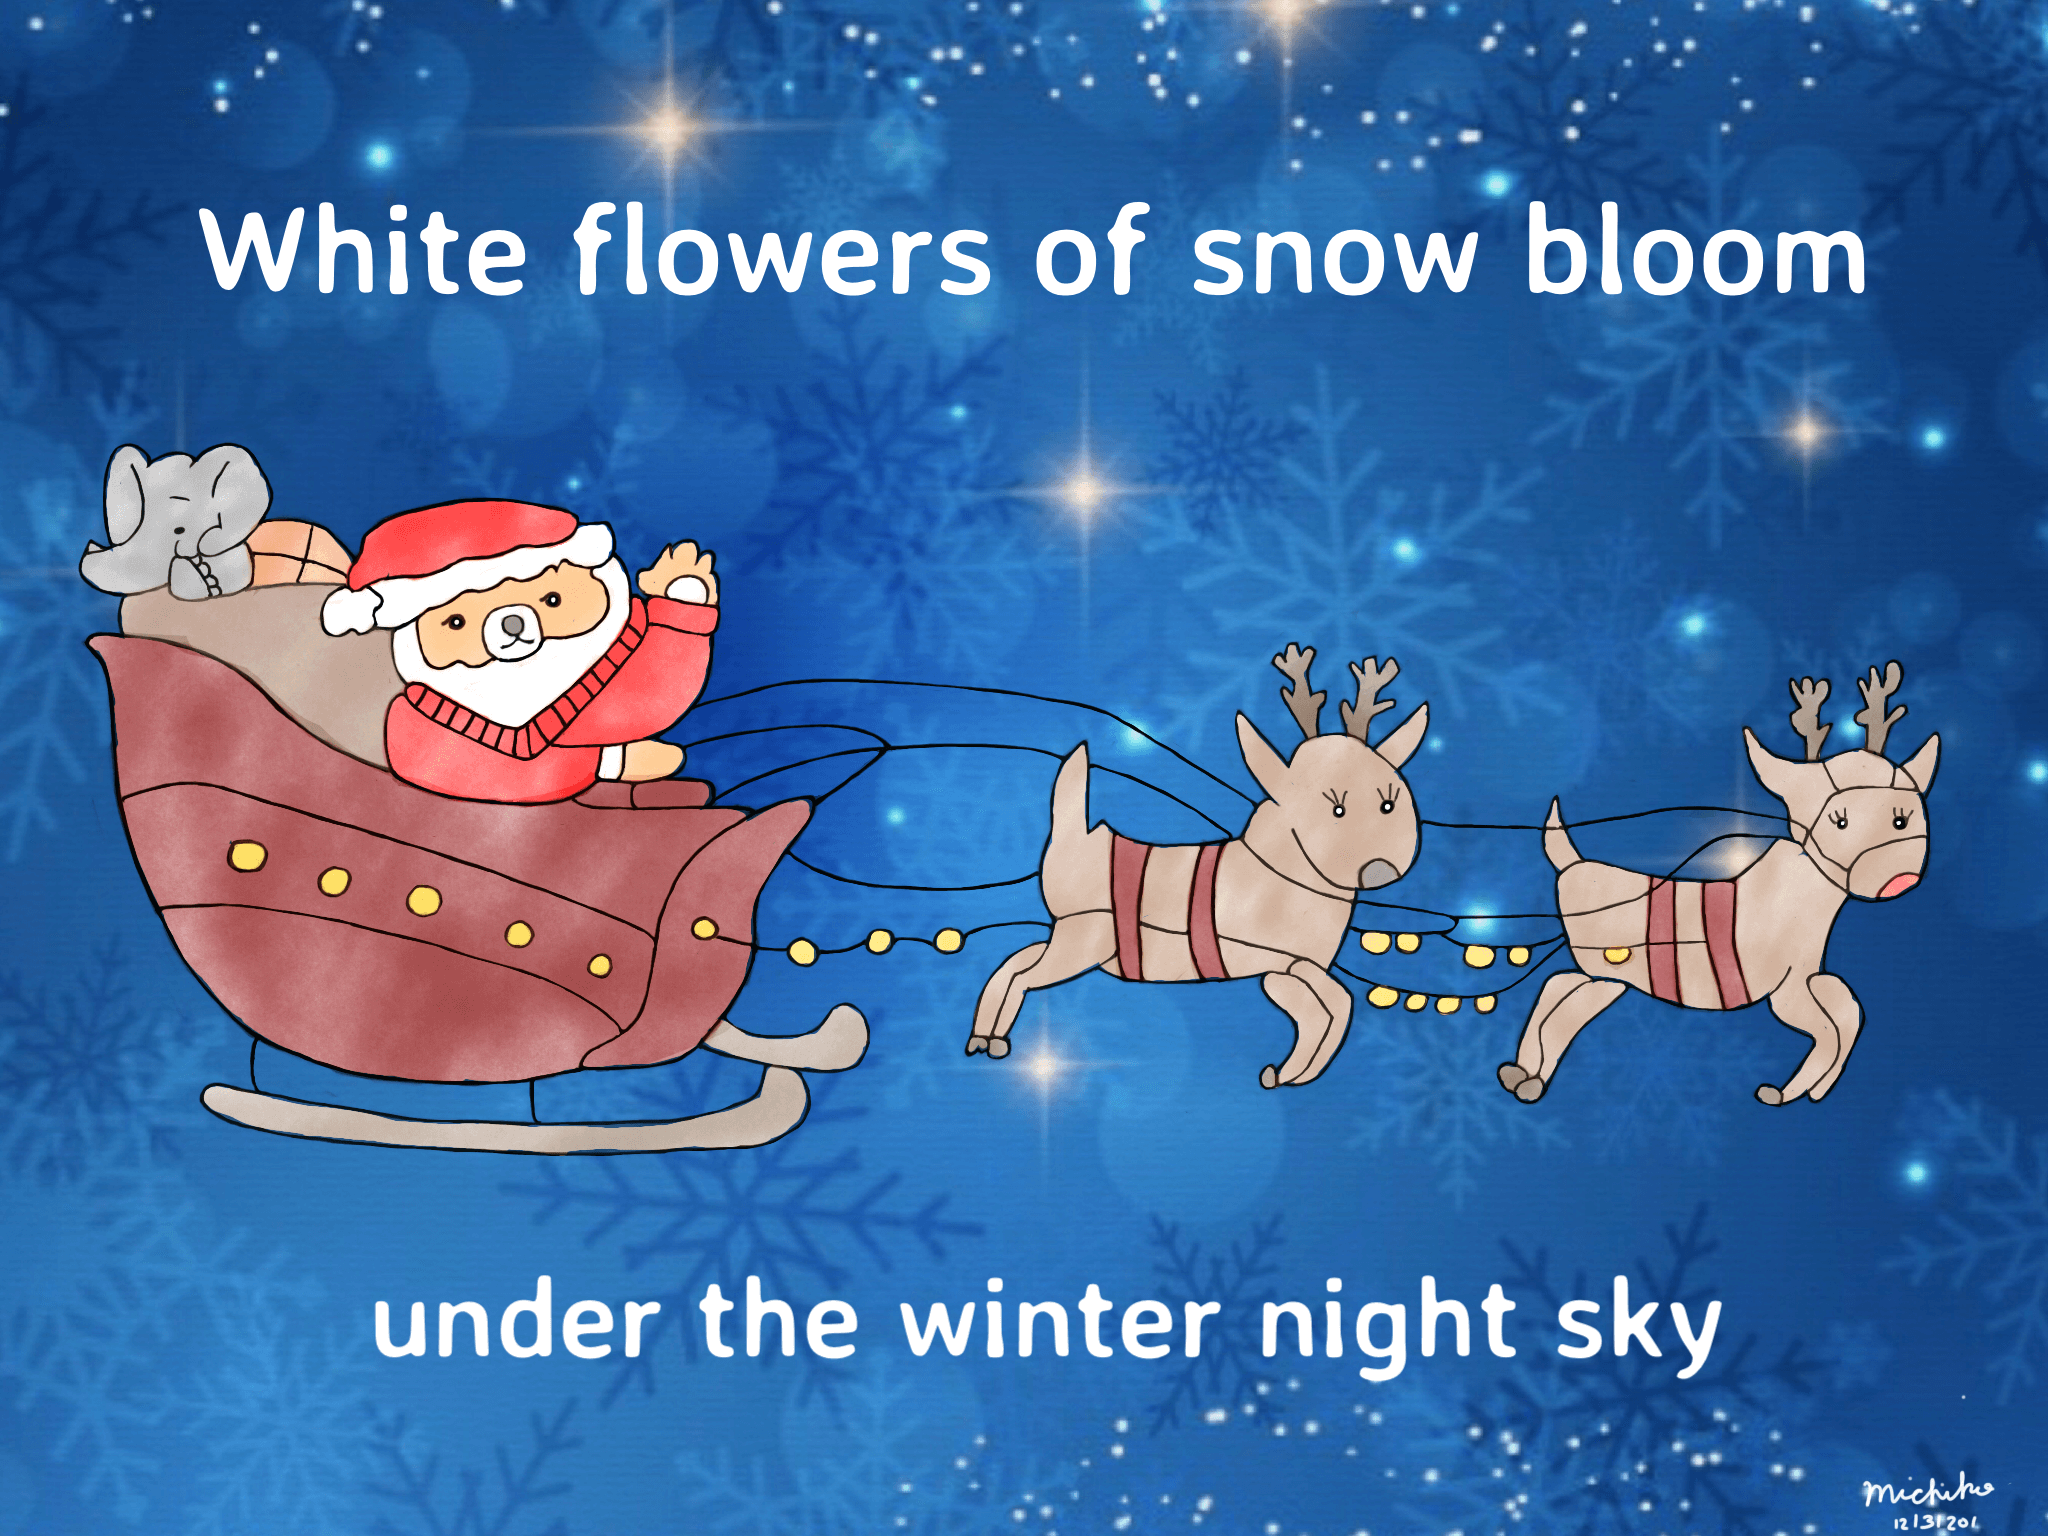 White flowers of snow bloom